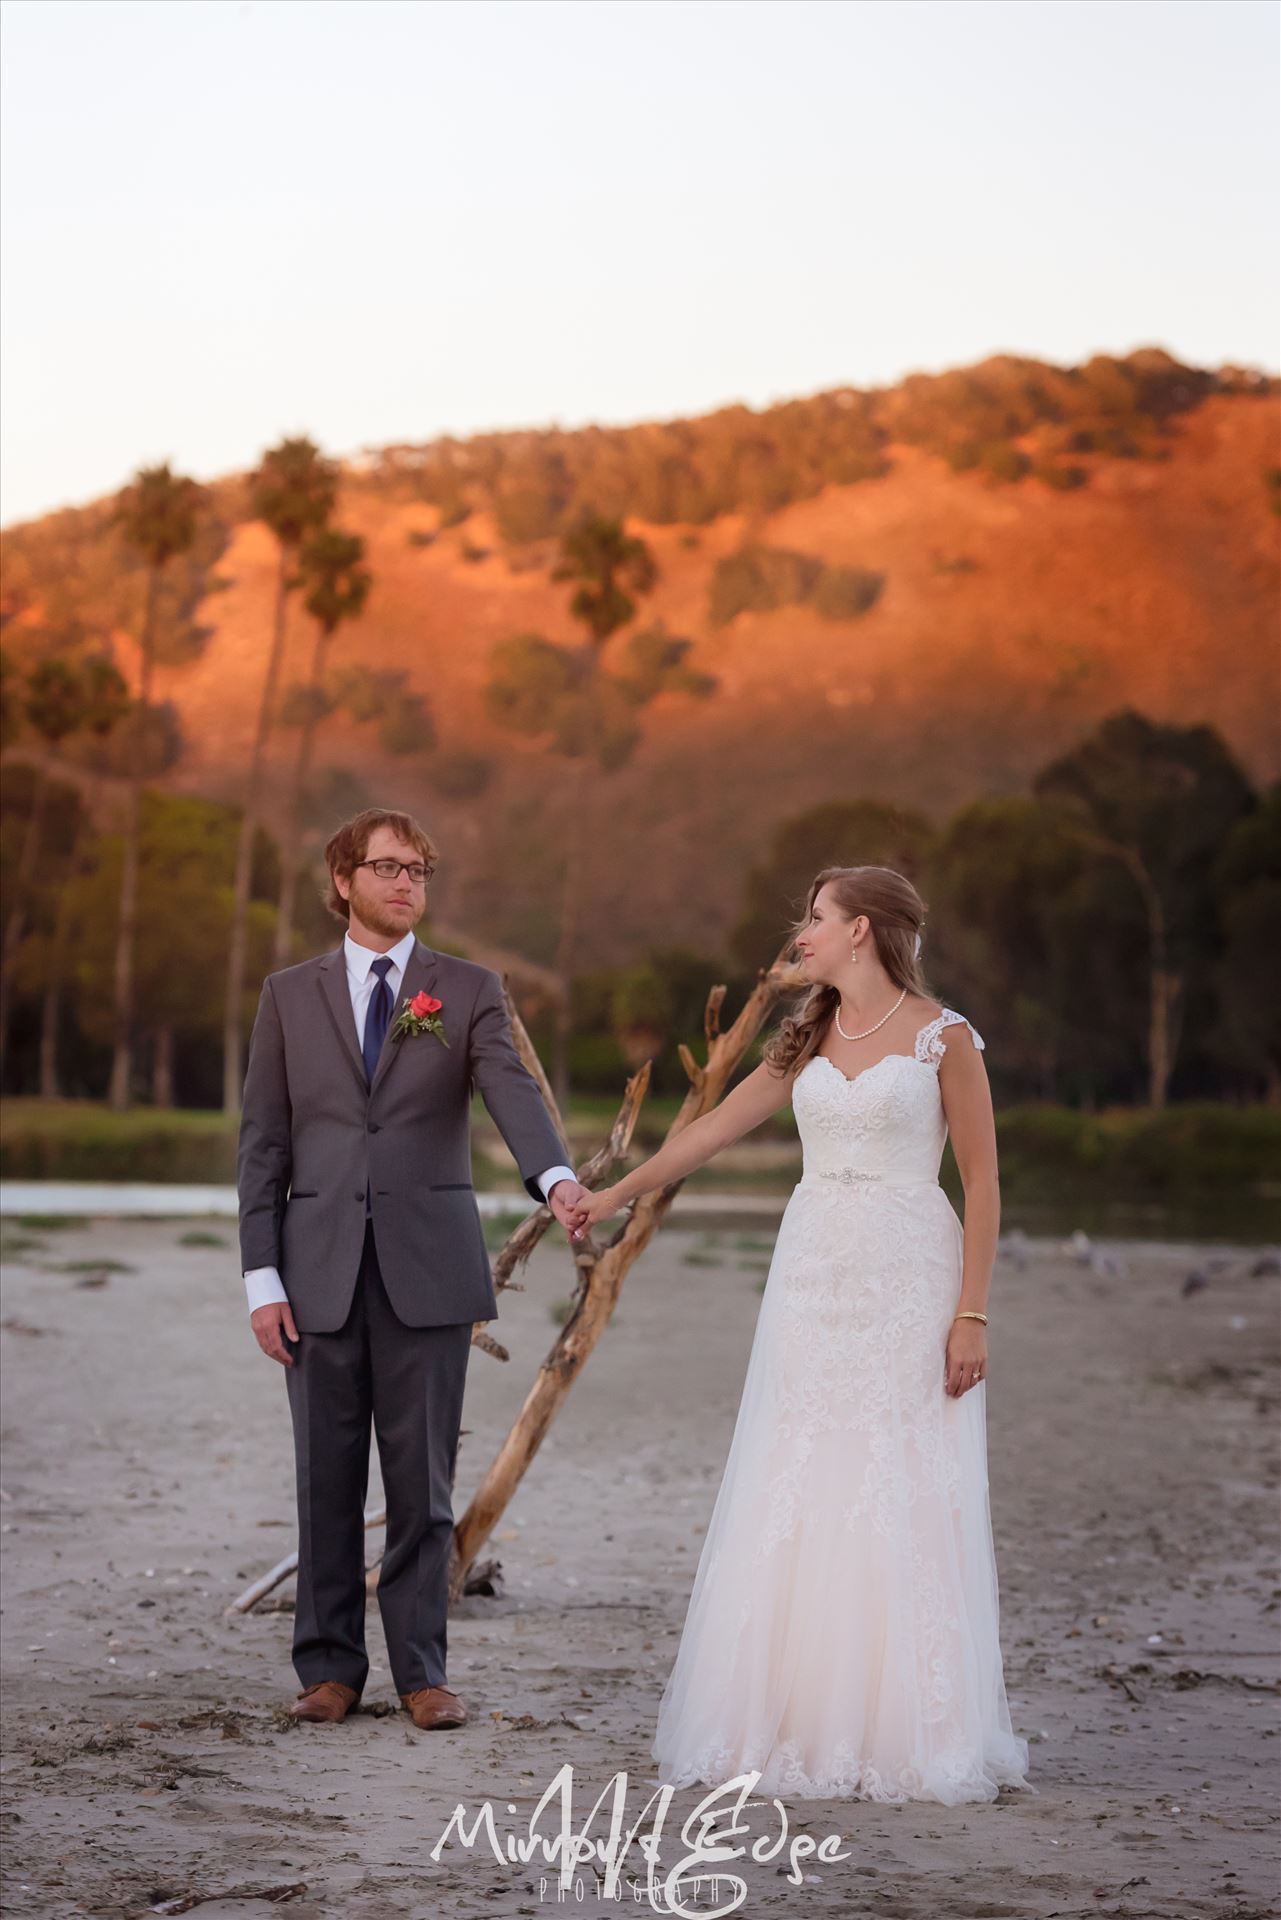 Port-7407.jpg - Romantic and Modern with a Vintage Touch - Wedding Photography at the Avila Bay Golf Resort in Avila Beach, California by Sarah Williams